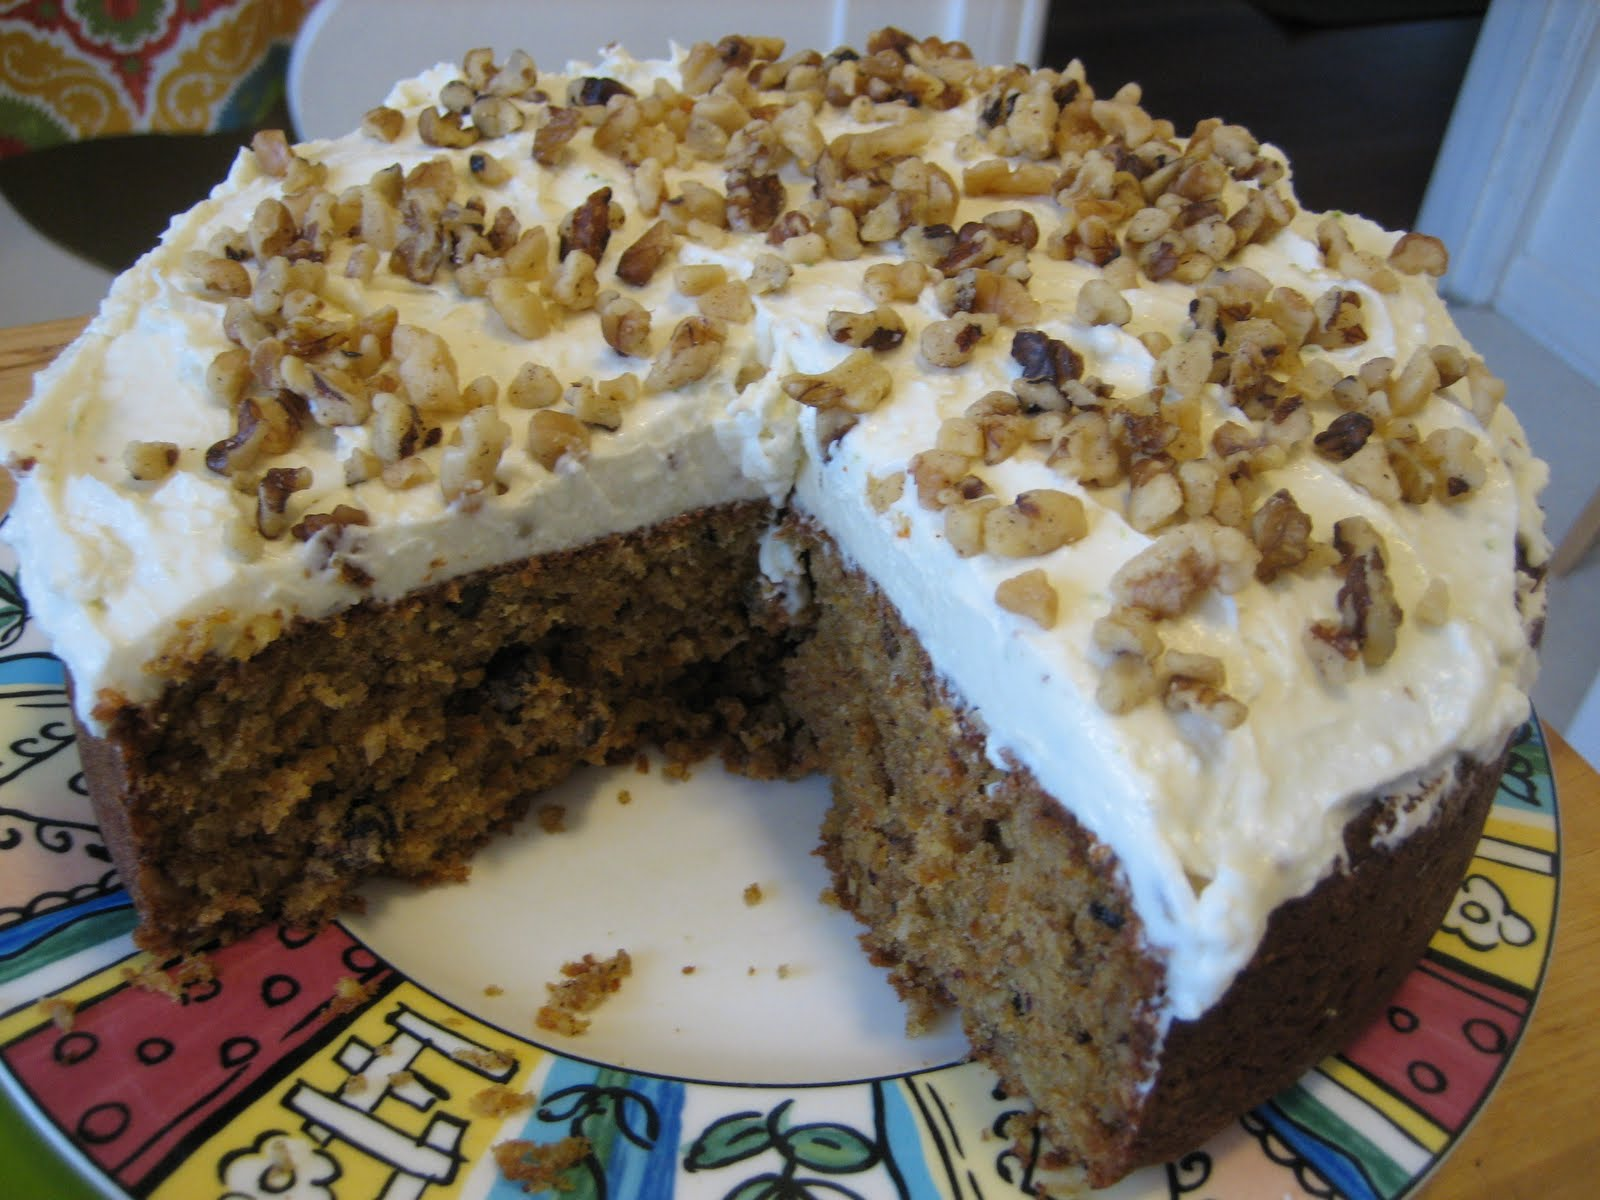 ... an carrot cake with lime carrot cake with lime carrot cake with lime